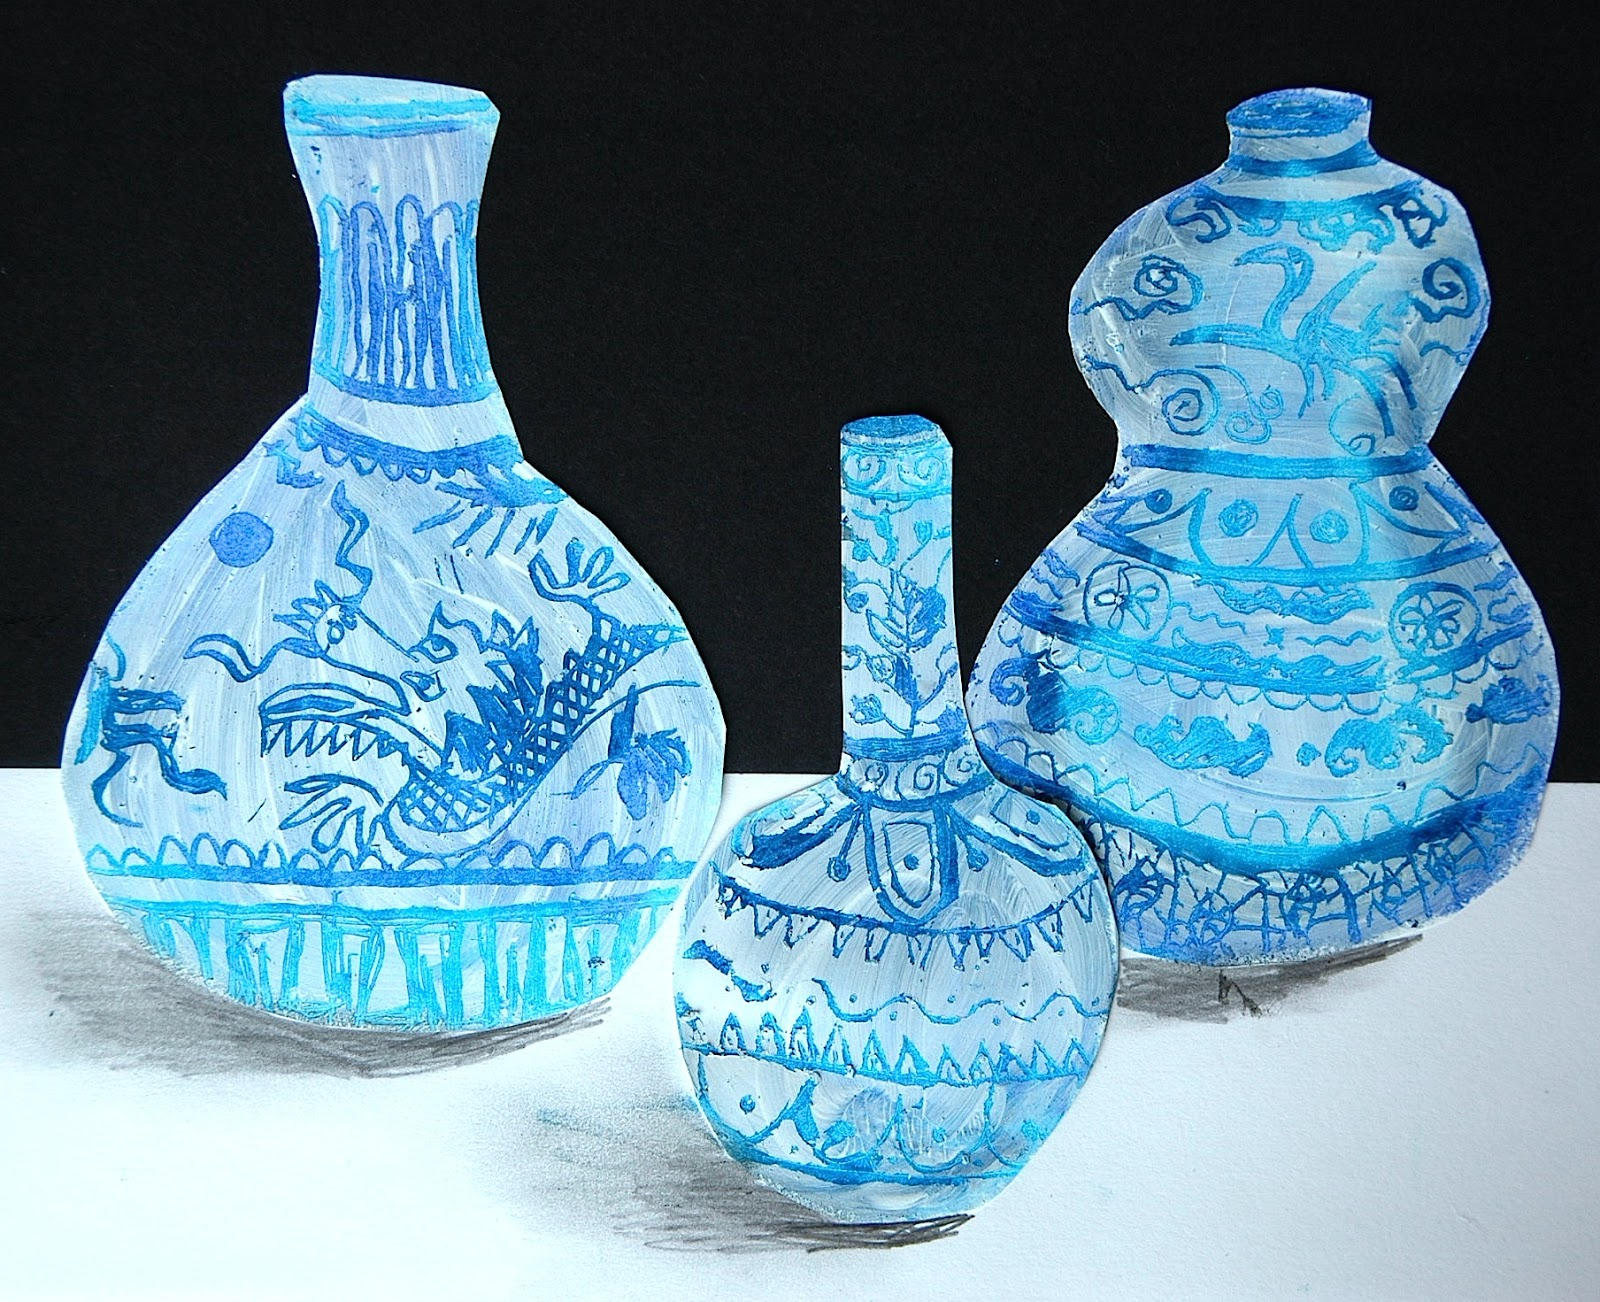 Drawn vase ming vase Covered various Vases with covered